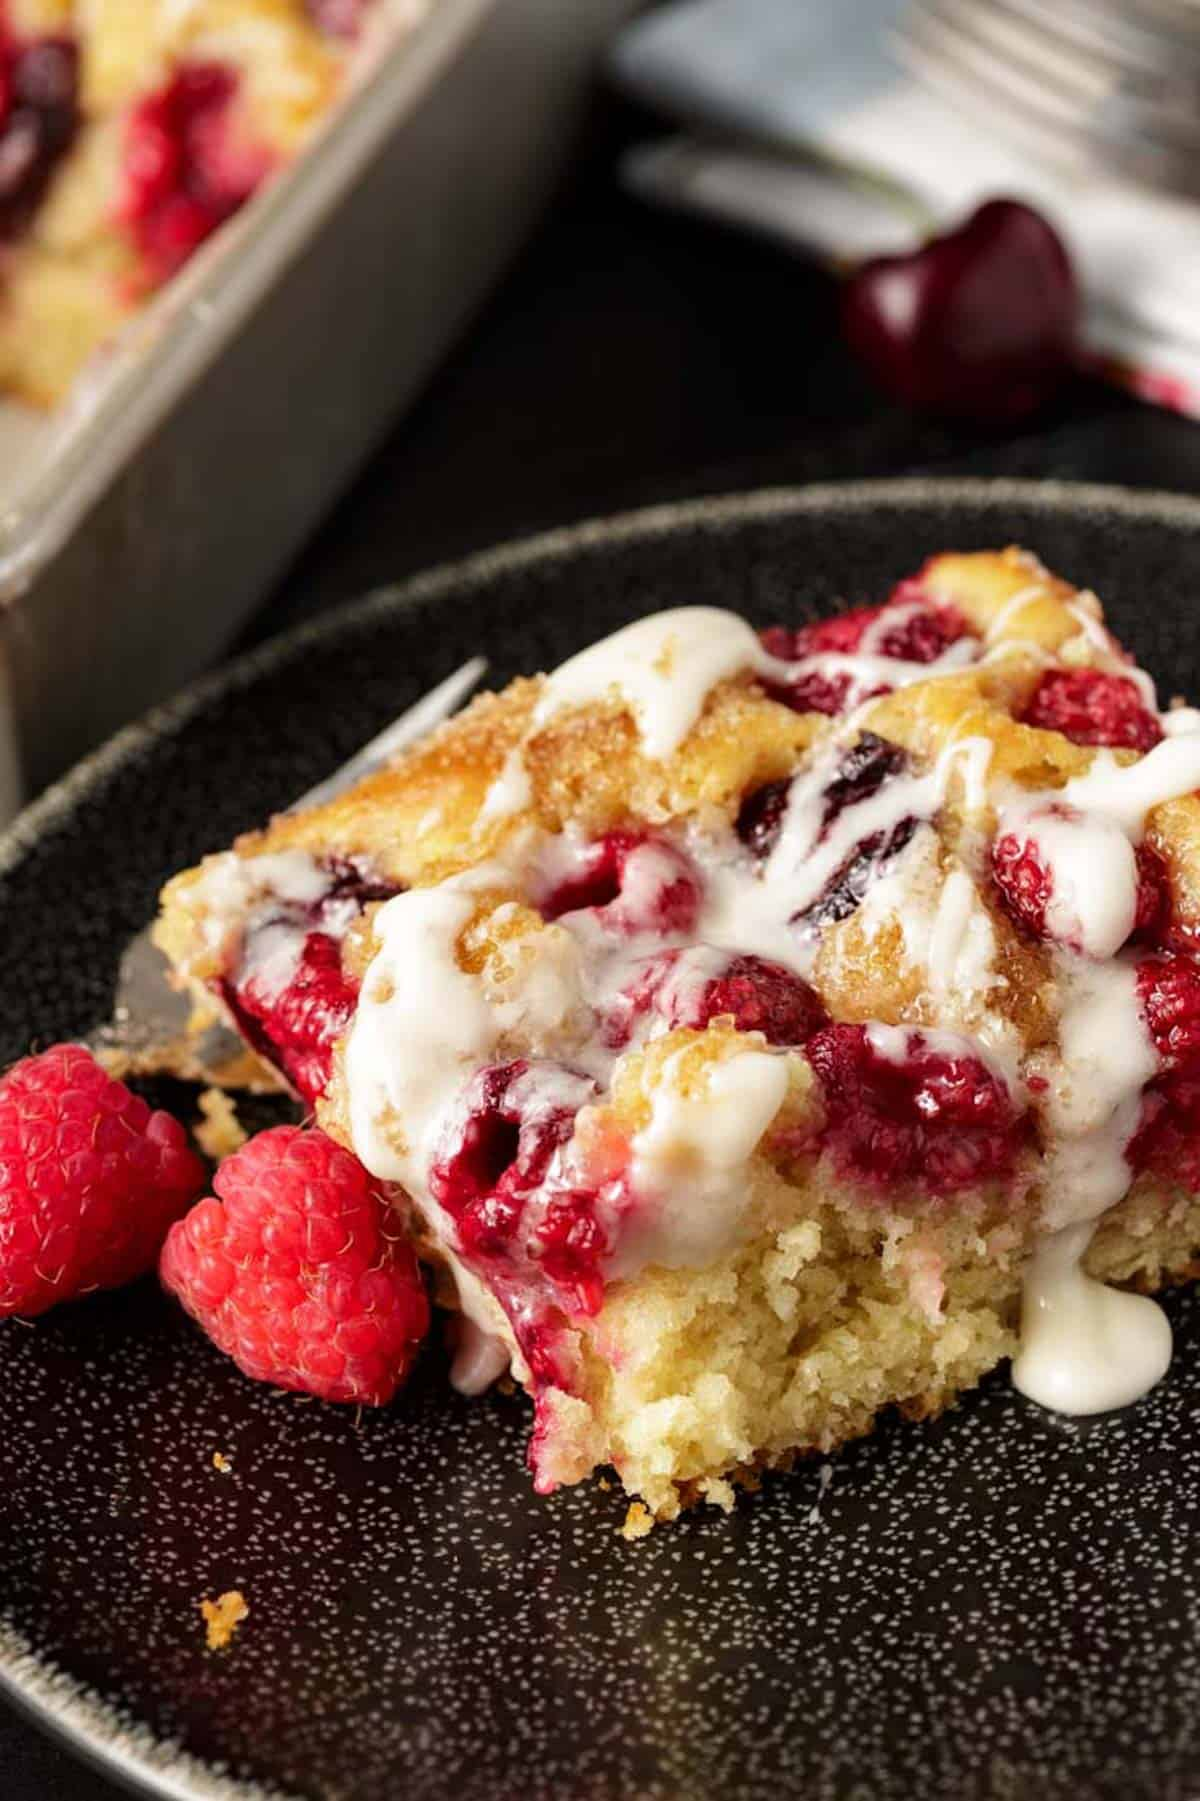 A square serving of coffee cake with raspberries on the side.